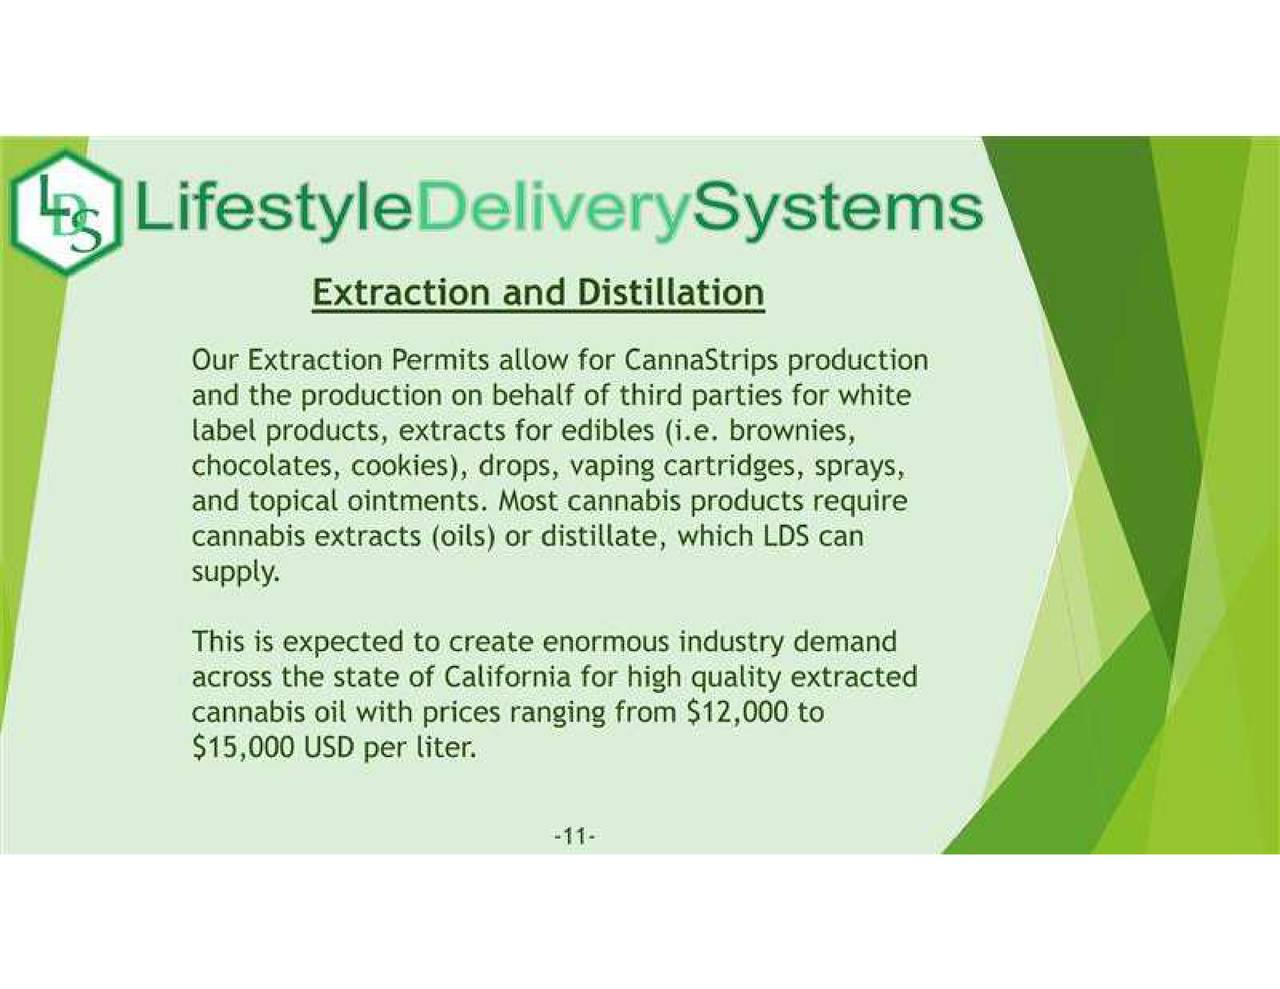 Lifestyle Delivery Systems Aktie